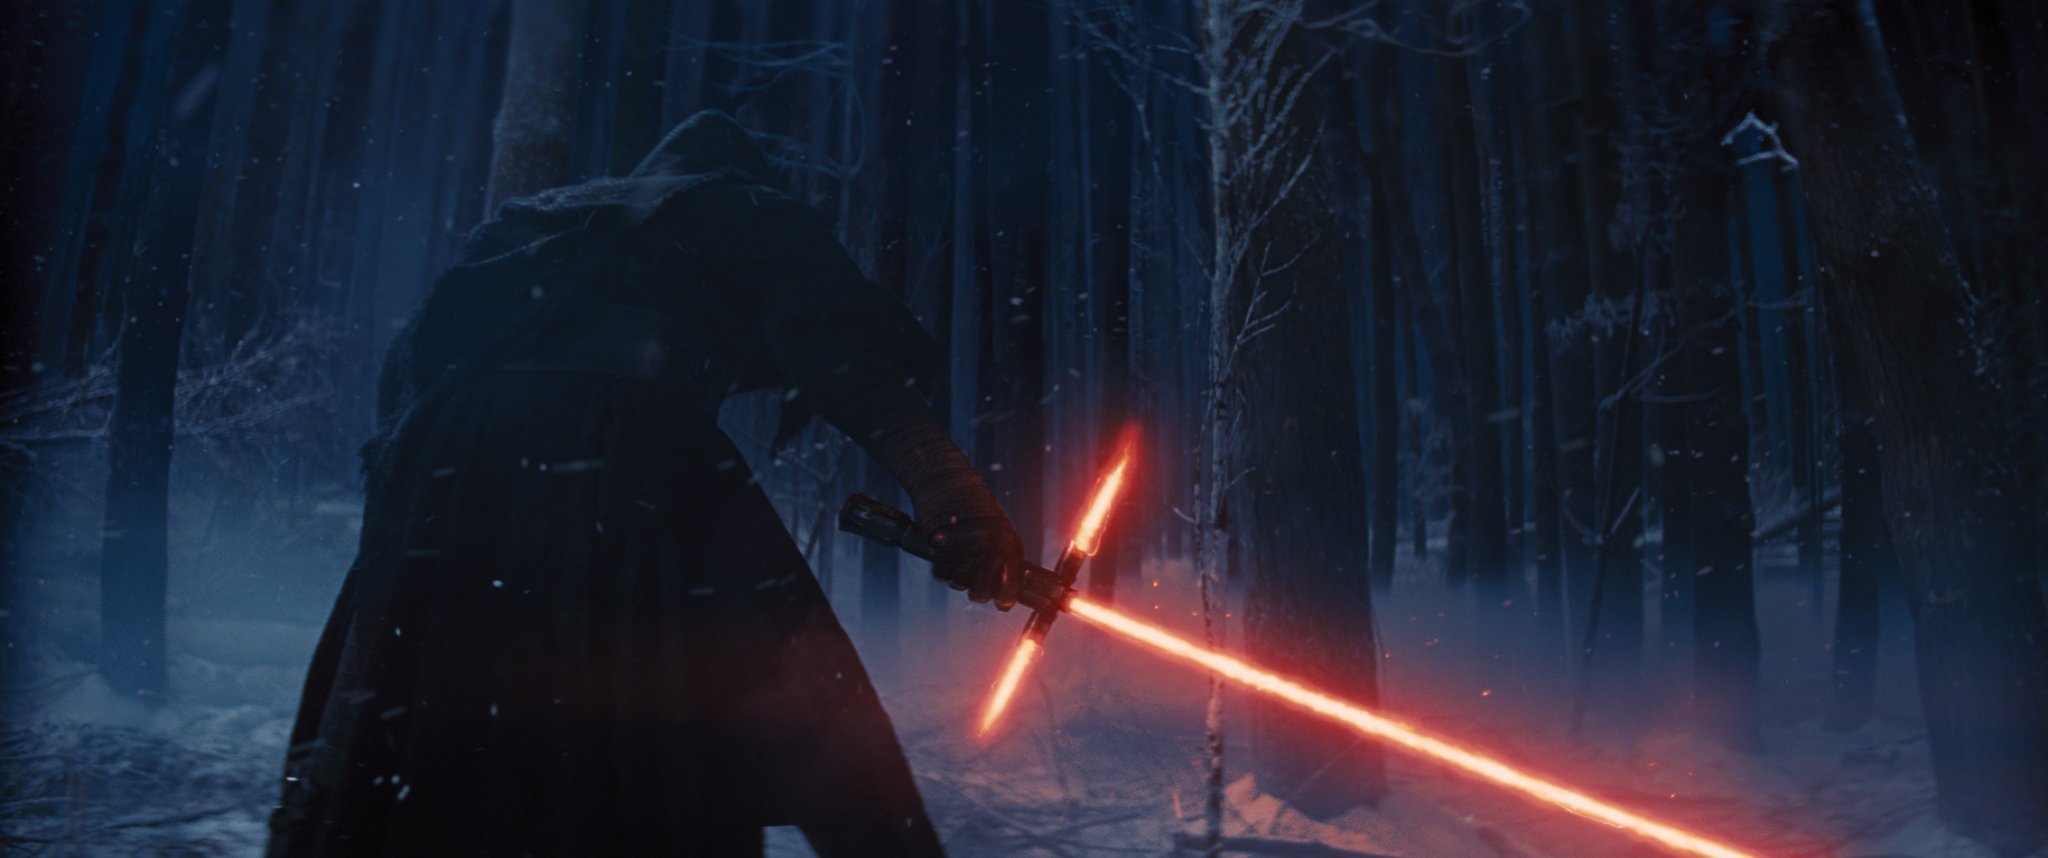 Star Wars: The Force Awakens releases 12/18/15 #TheForceAwakens #StarWarsVII ©Lucasfilm 2015